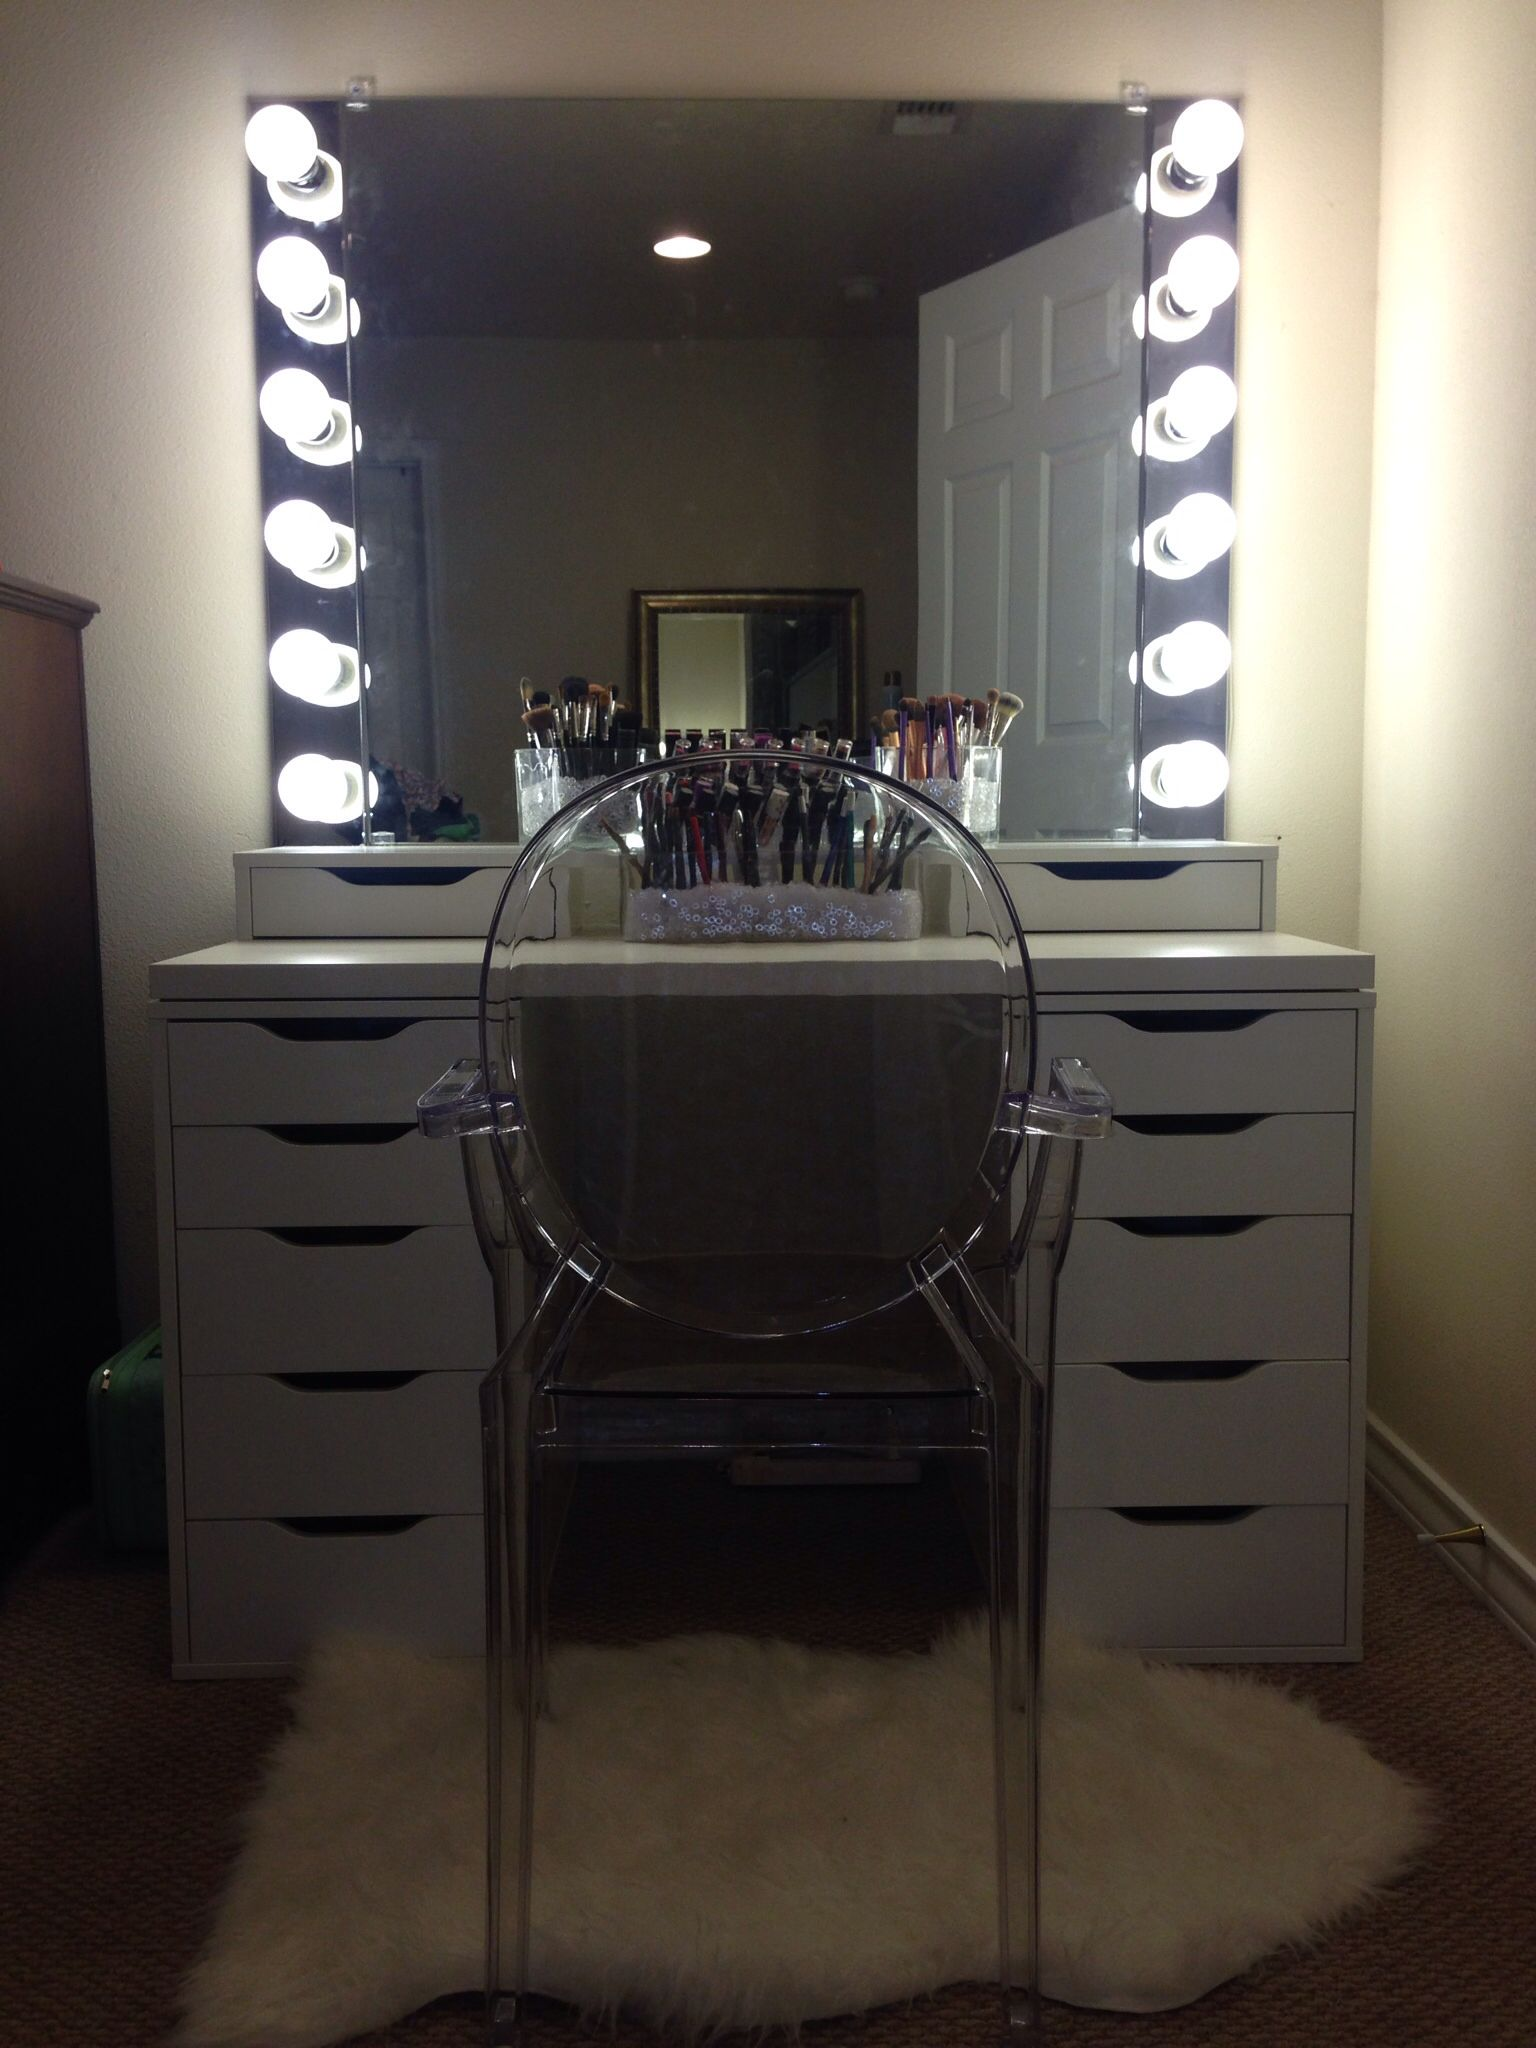 Genial Hollywood Vanity Mirror With Lights, Makeup Vanity Mirror With Lights,  Vanity Mirror With Lights Ikea, Lighted Makeup Mirror, #Hollywood #Lights # Vanity